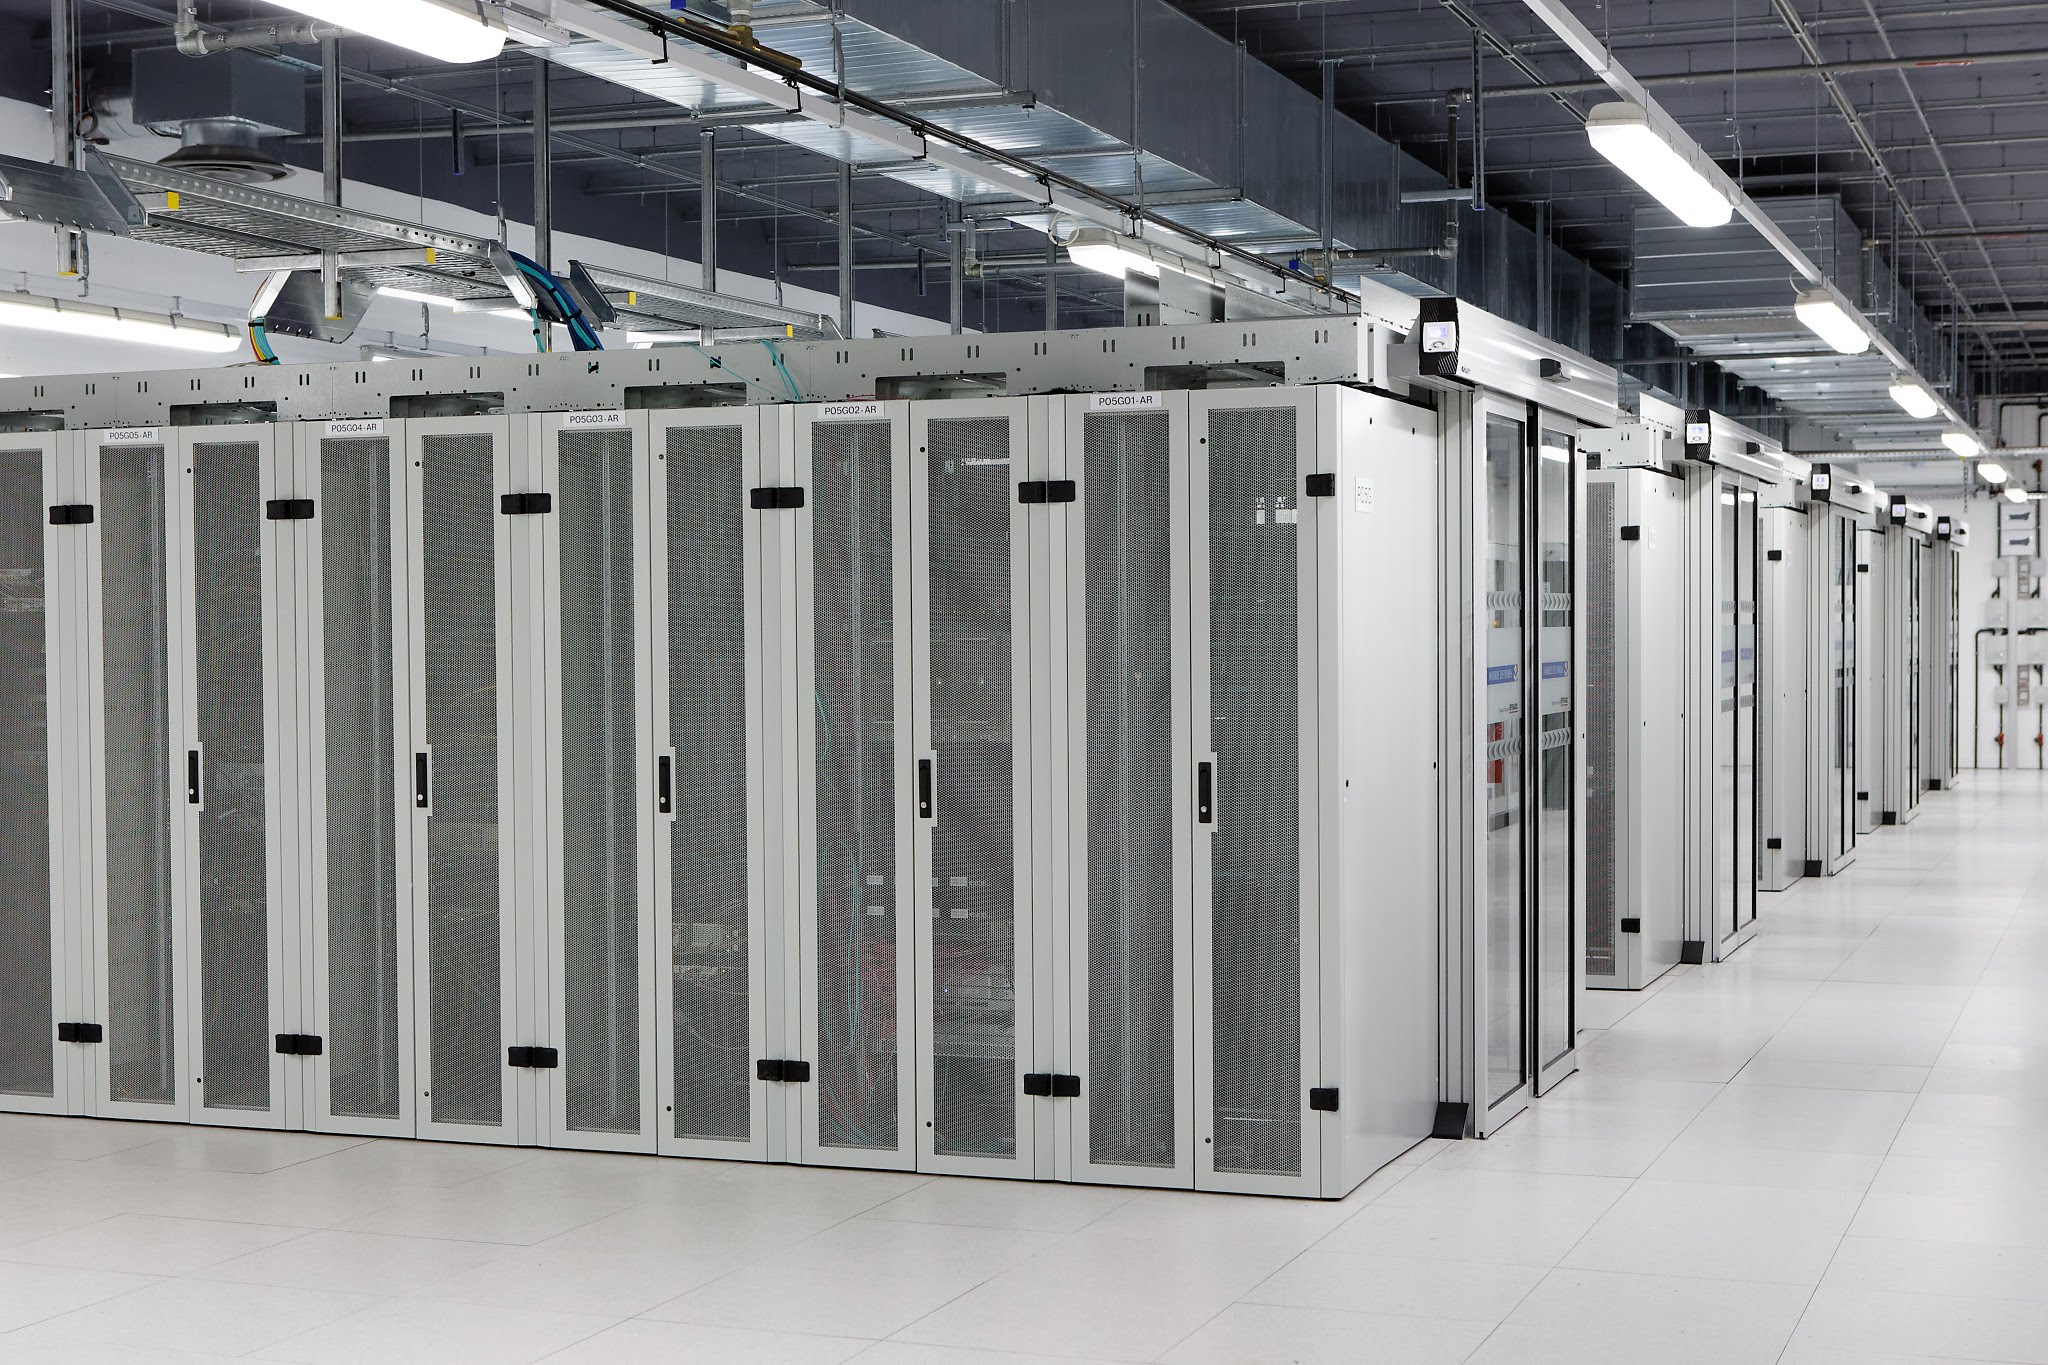 Paris opens a data center to control its digital infrastructure